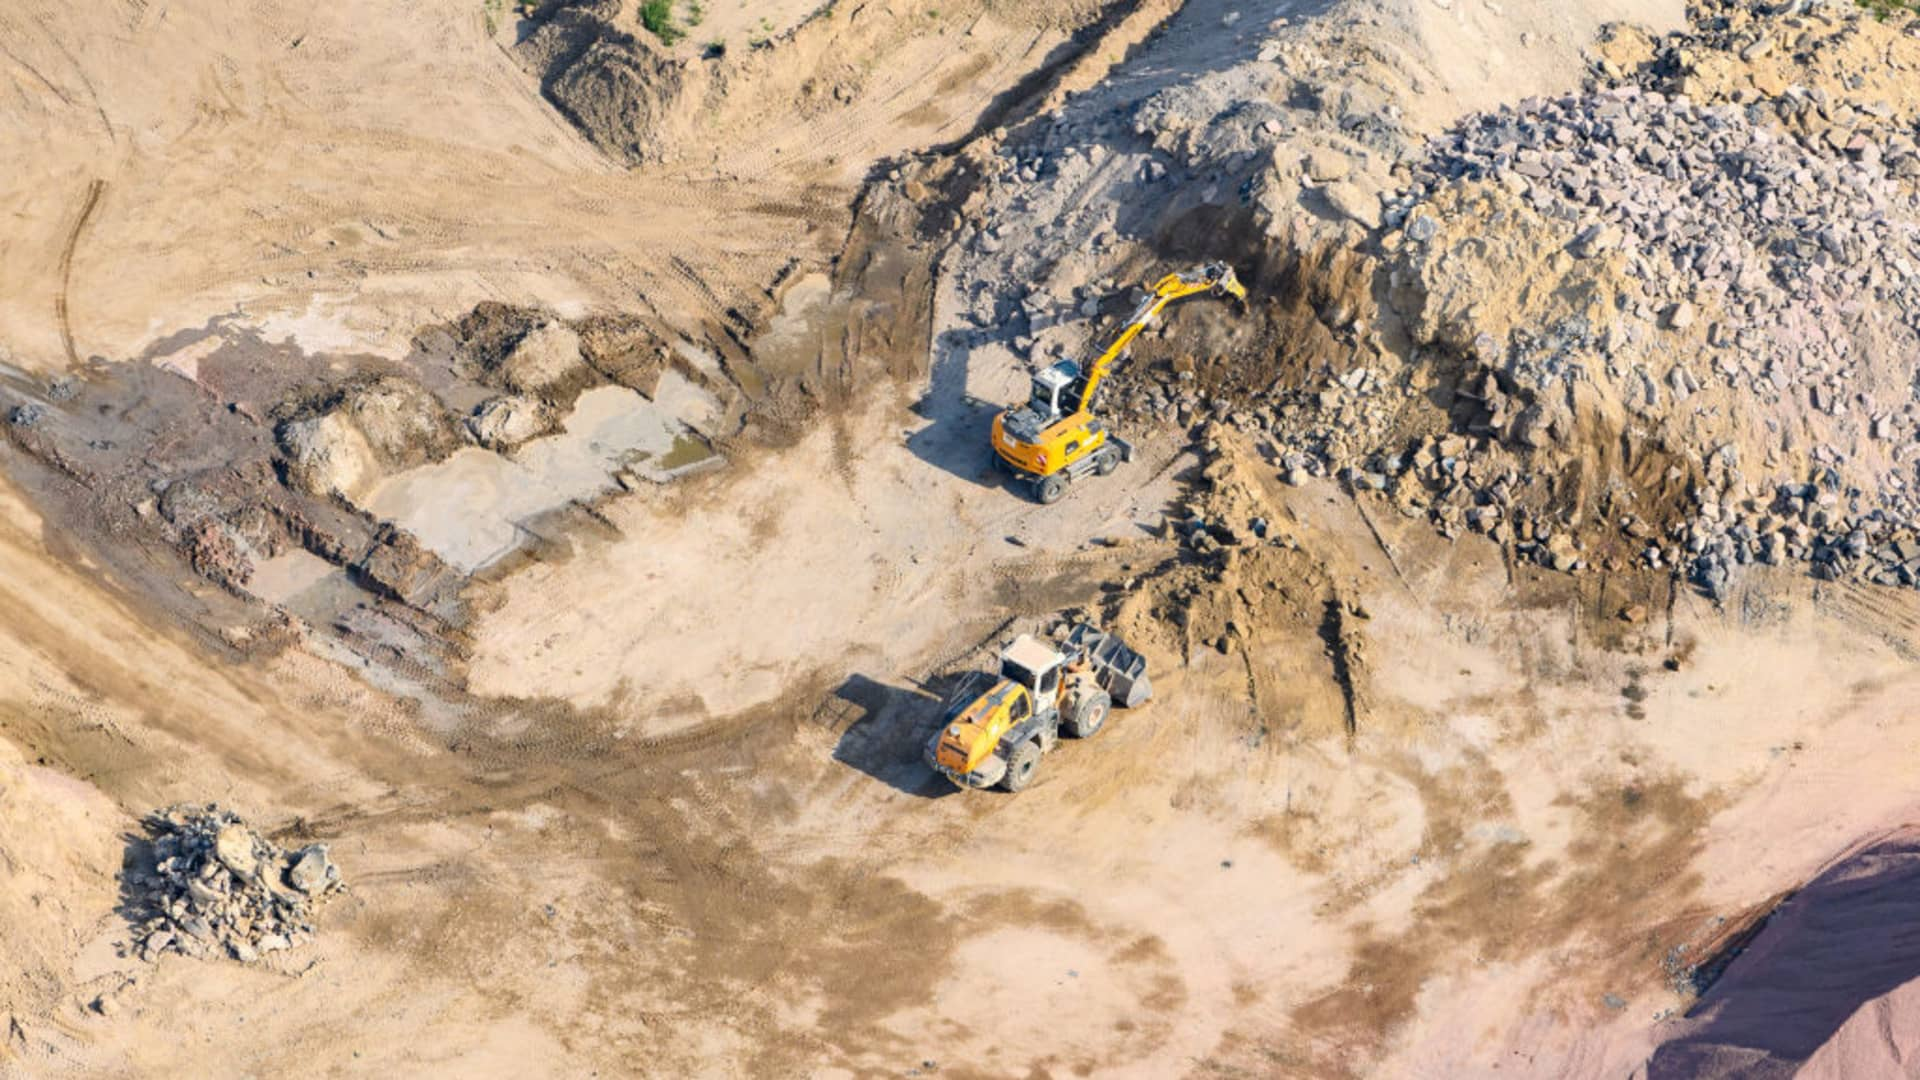 An excavator and a bulldozer are working on the grounds of the gravel plant and the concrete mixing plant of the Max Bögl group of companies.